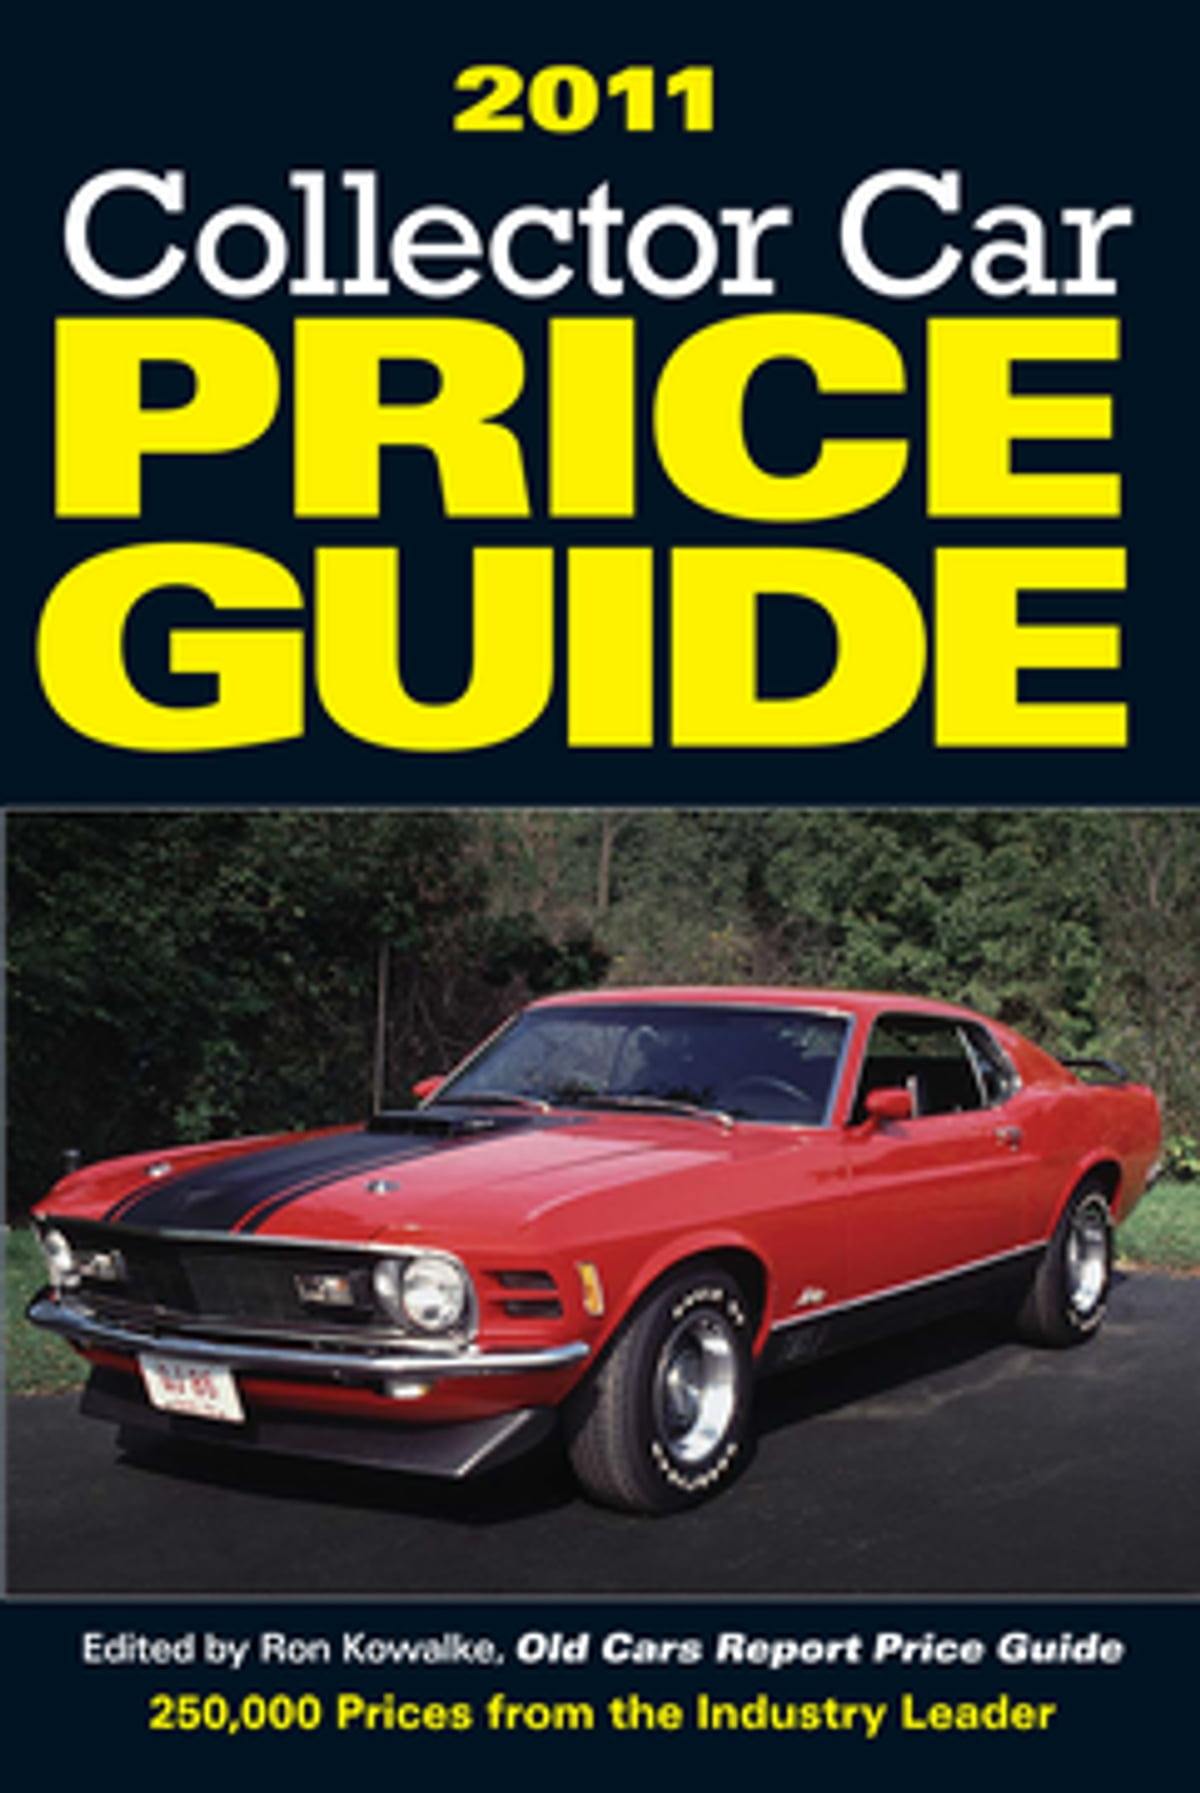 Collector Car Price Guide EBook By Ron Kowalke - Classic car guide